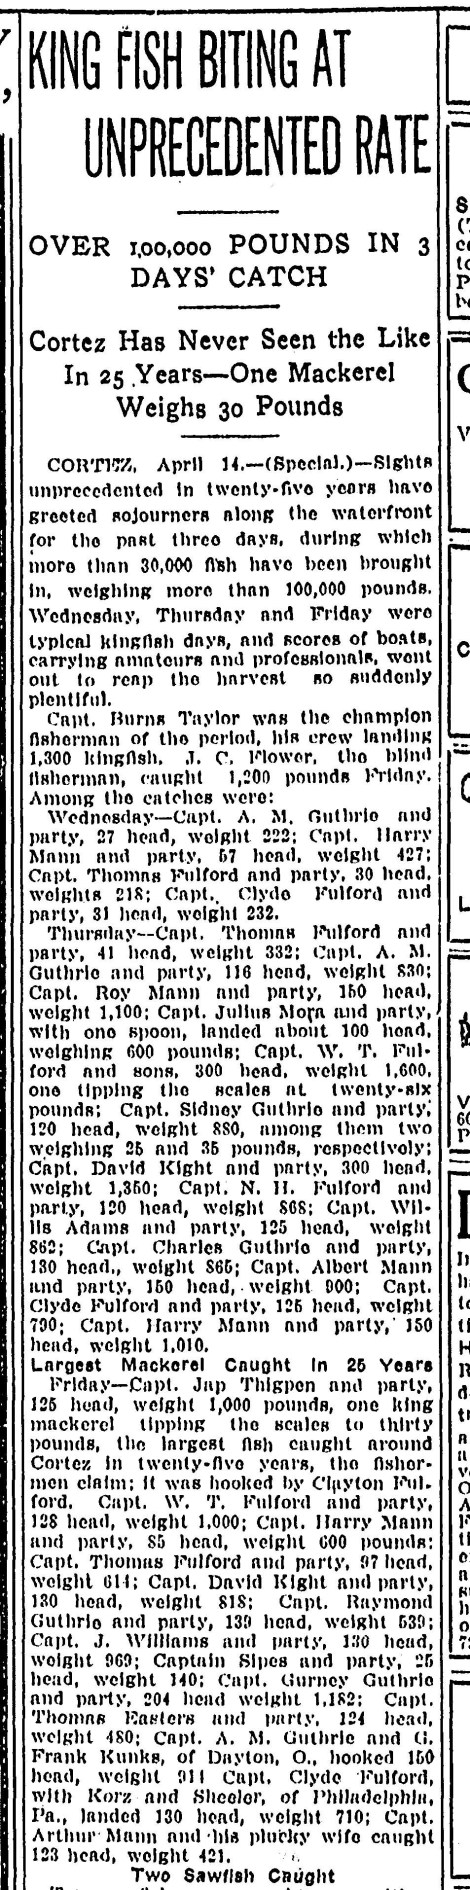 Tampa Tribune - Sunday, April 16, 1916 web